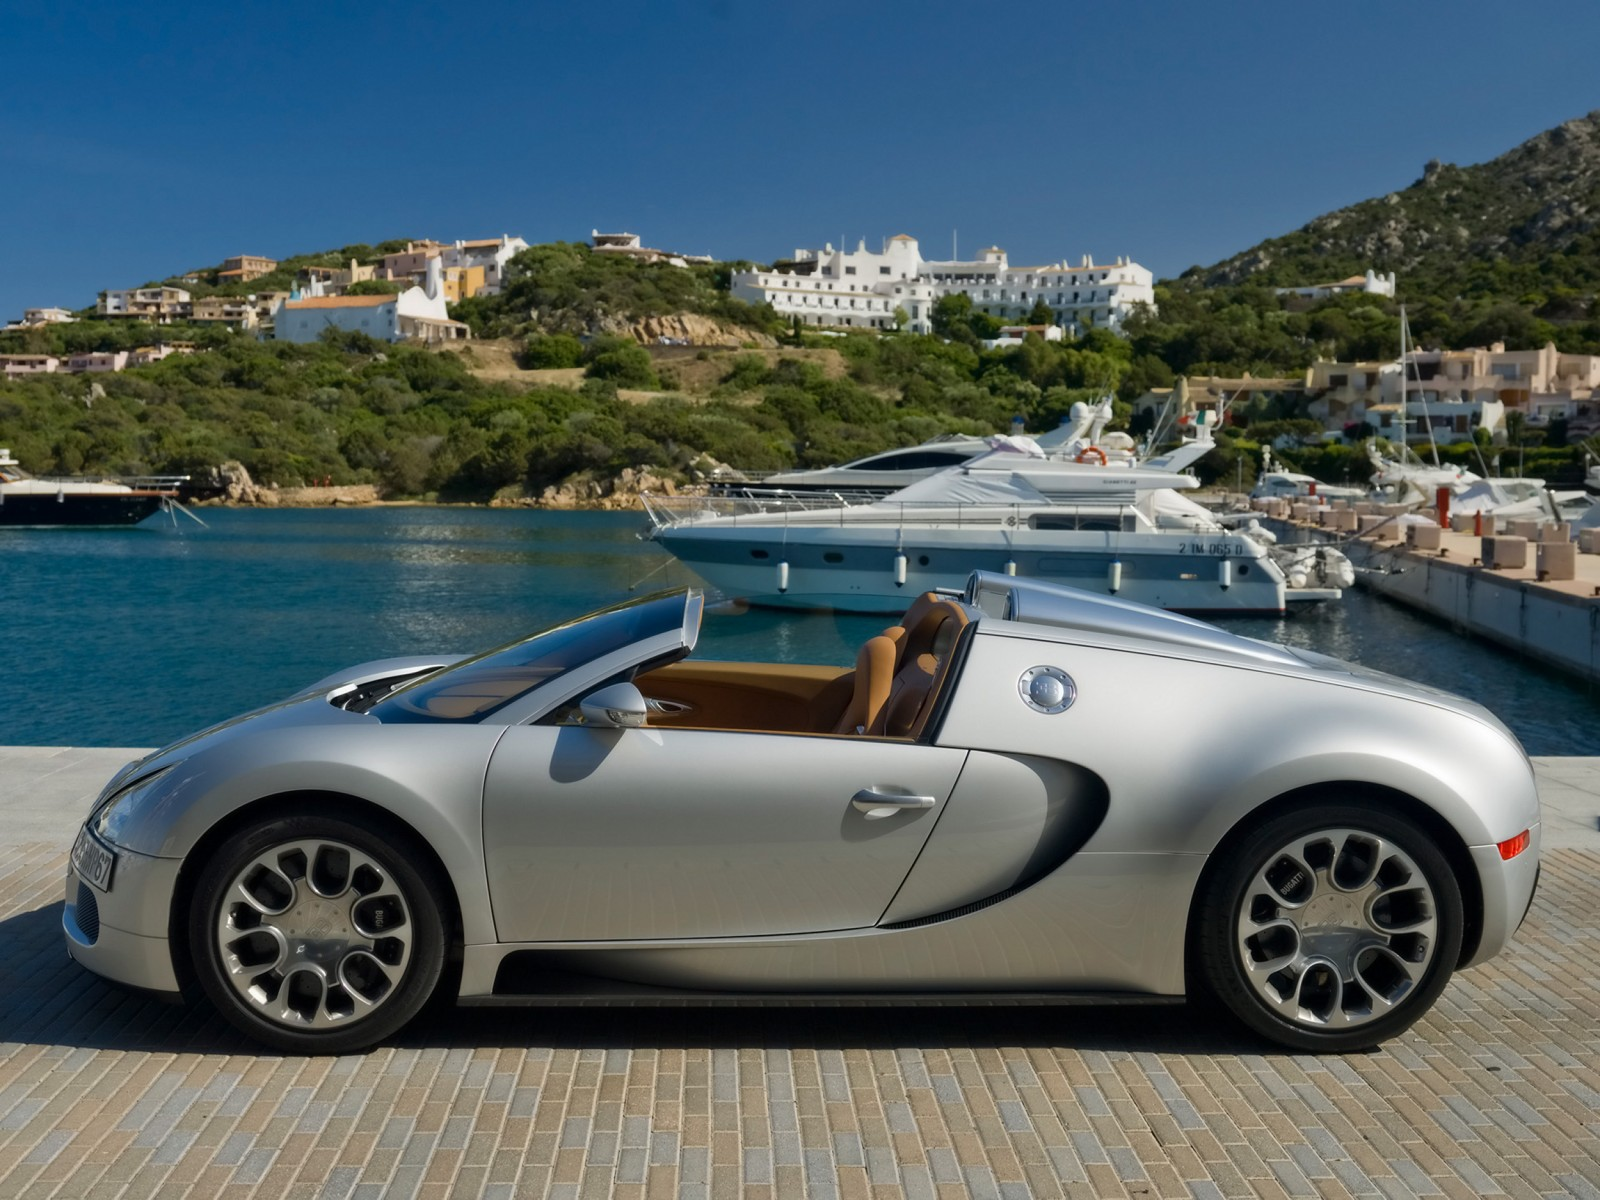 2010 bugatti veyron grand sport wallpaper free car. Black Bedroom Furniture Sets. Home Design Ideas